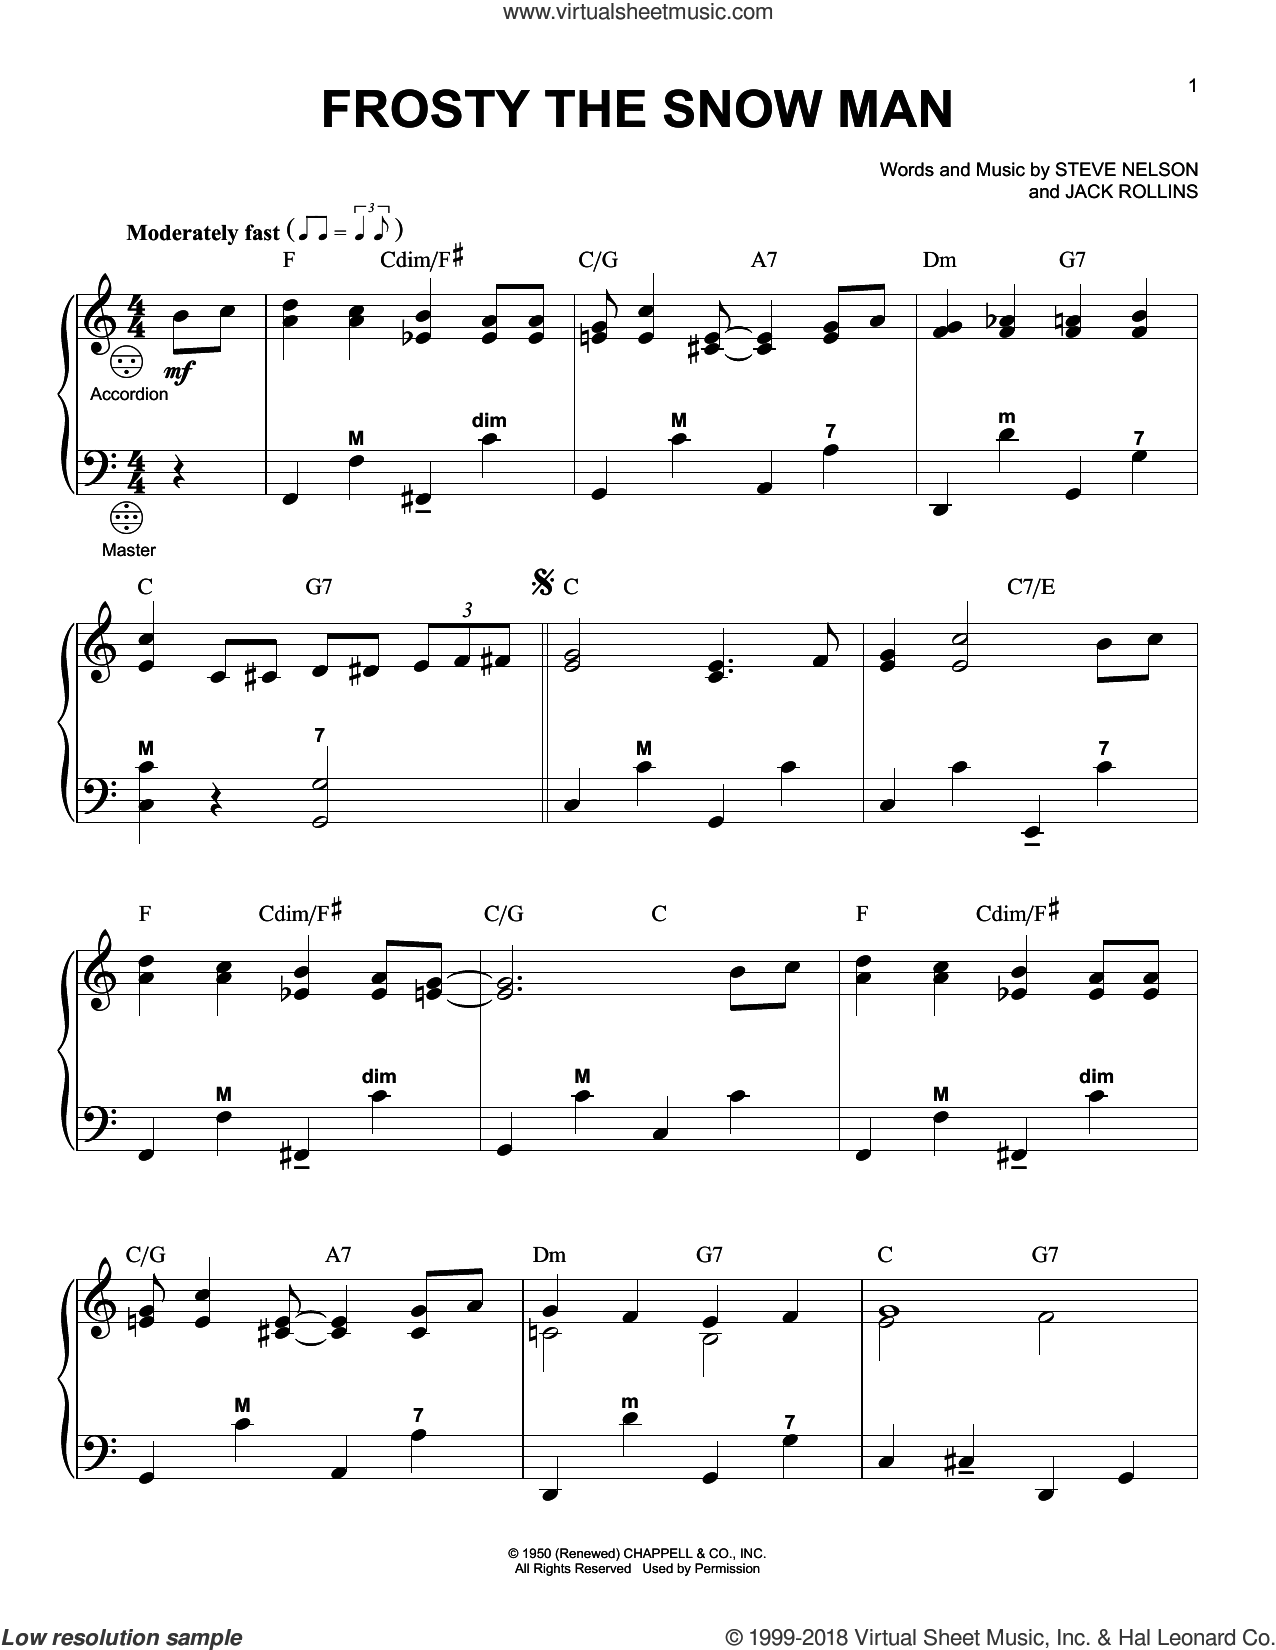 Frosty The Snow Man sheet music for accordion by Steve Nelson and Jack Rollins, Christmas carol score, intermediate accordion. Score Image Preview.